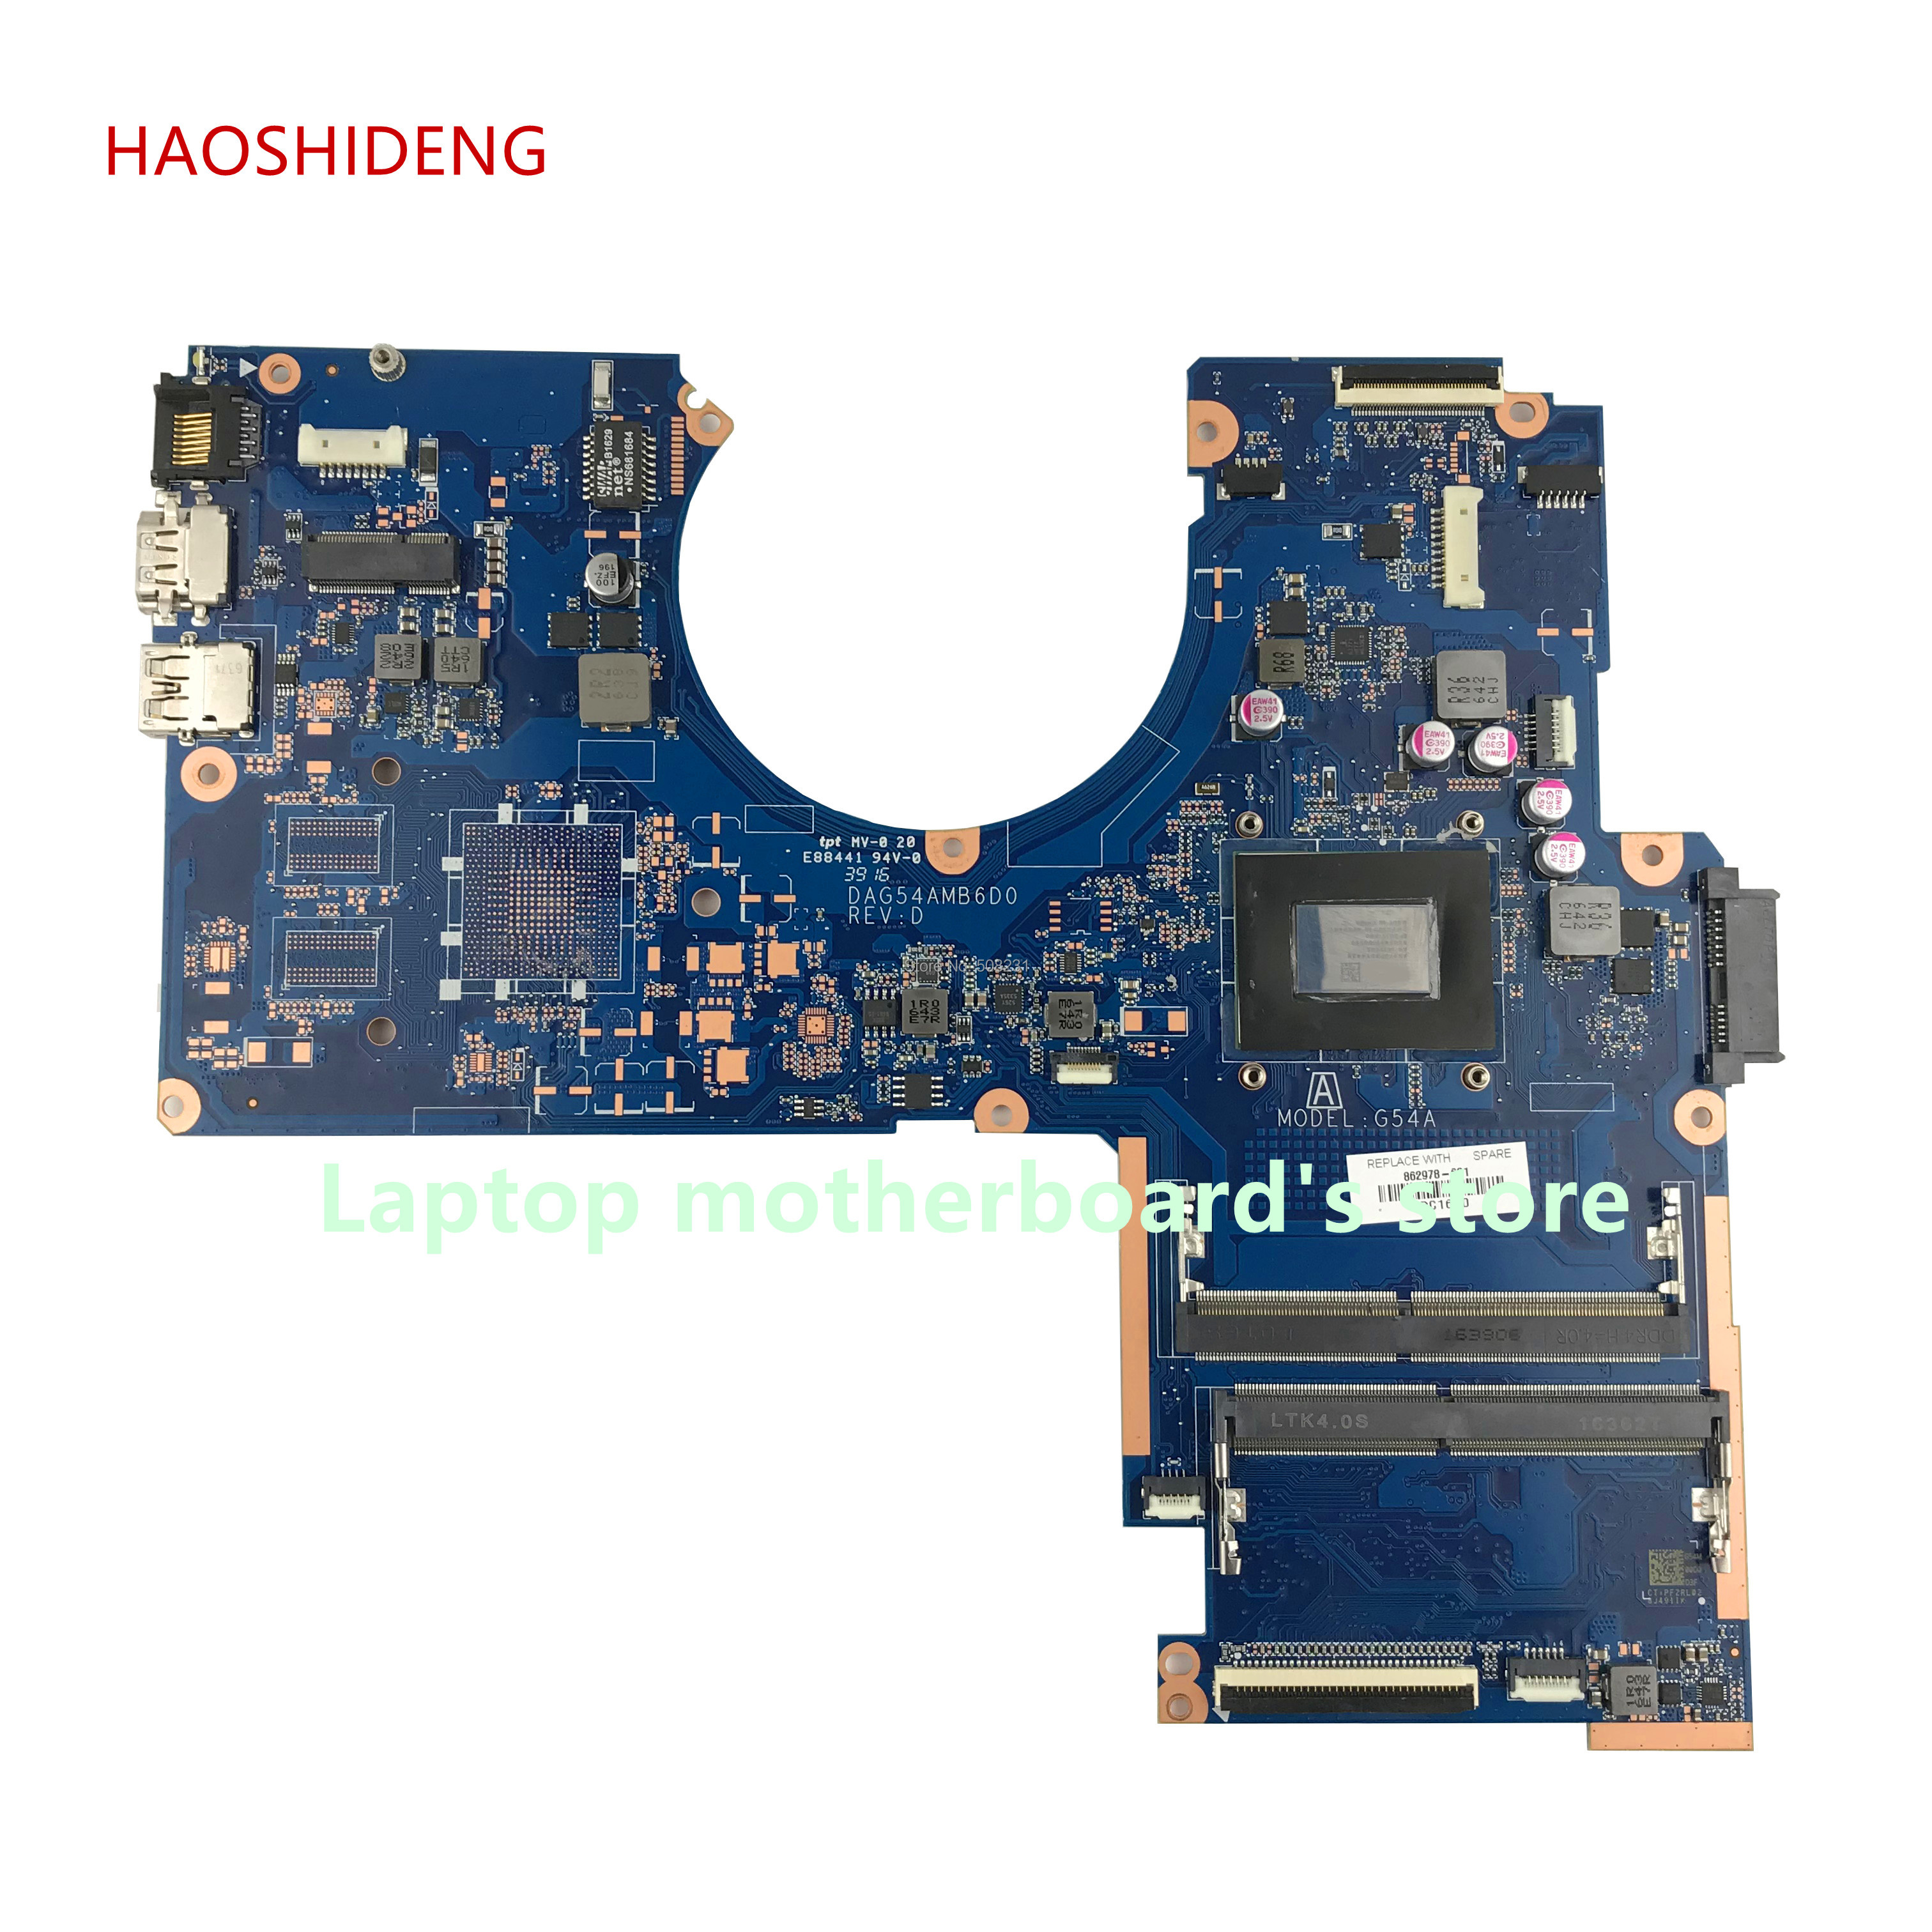 HAOSHIDENG 862978-601 G54A DAG54AMB6D0 for HP Pavilion 15-AW A5Z-AW 15-AW092nr Notebook motherboard with A12-9700P fully Tested haoshideng 809336 601 da0x22mb6d0 x22 for hp pavilion notebook 15 ab 15 ab188cy motherboard with a6 6310 cpu fully tested